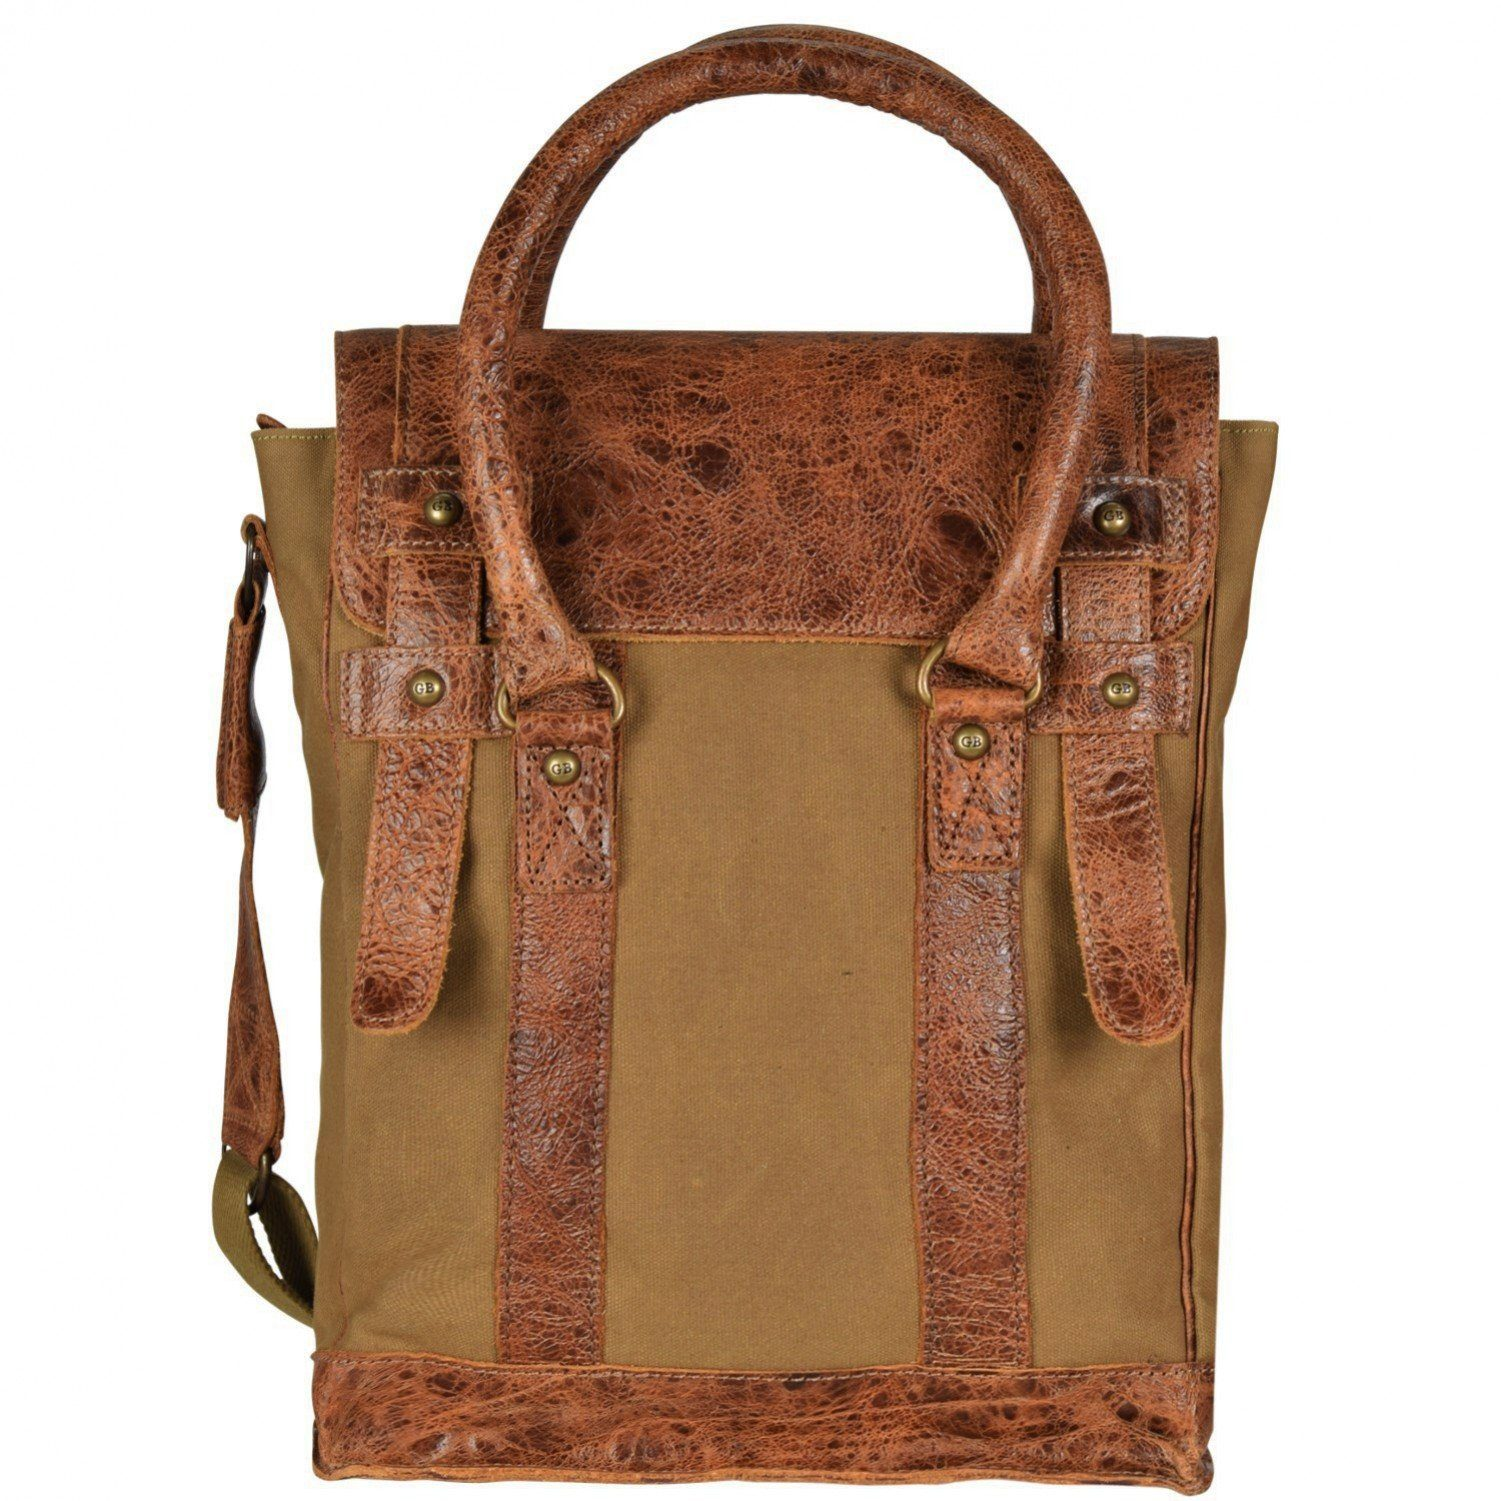 Greenburry Greenburry White Spirit Flathead II Handtasche 30 cm Tabletfach